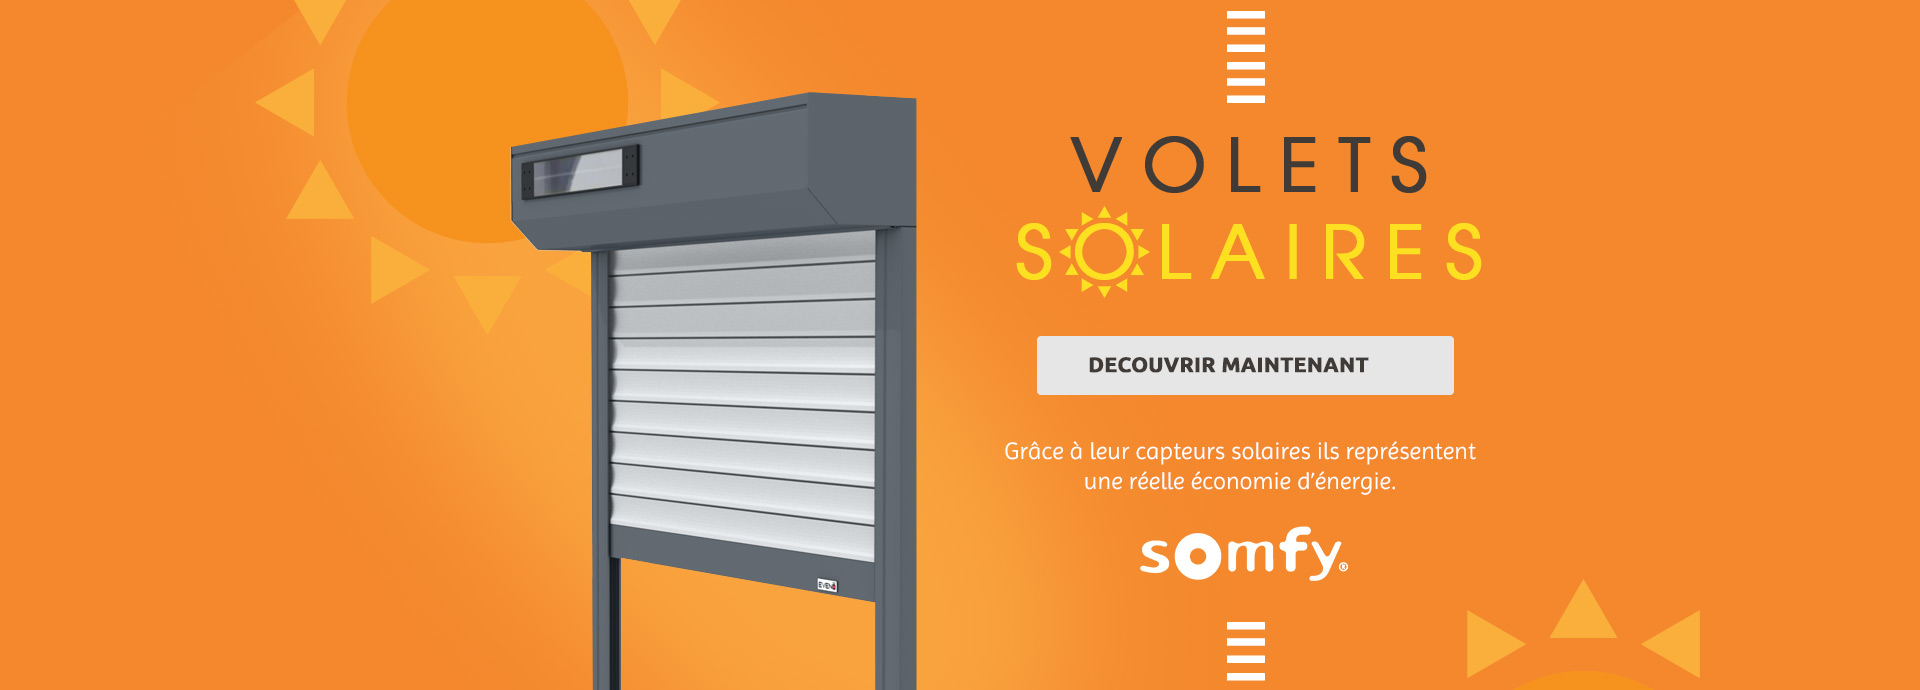 Volets solaires somfy